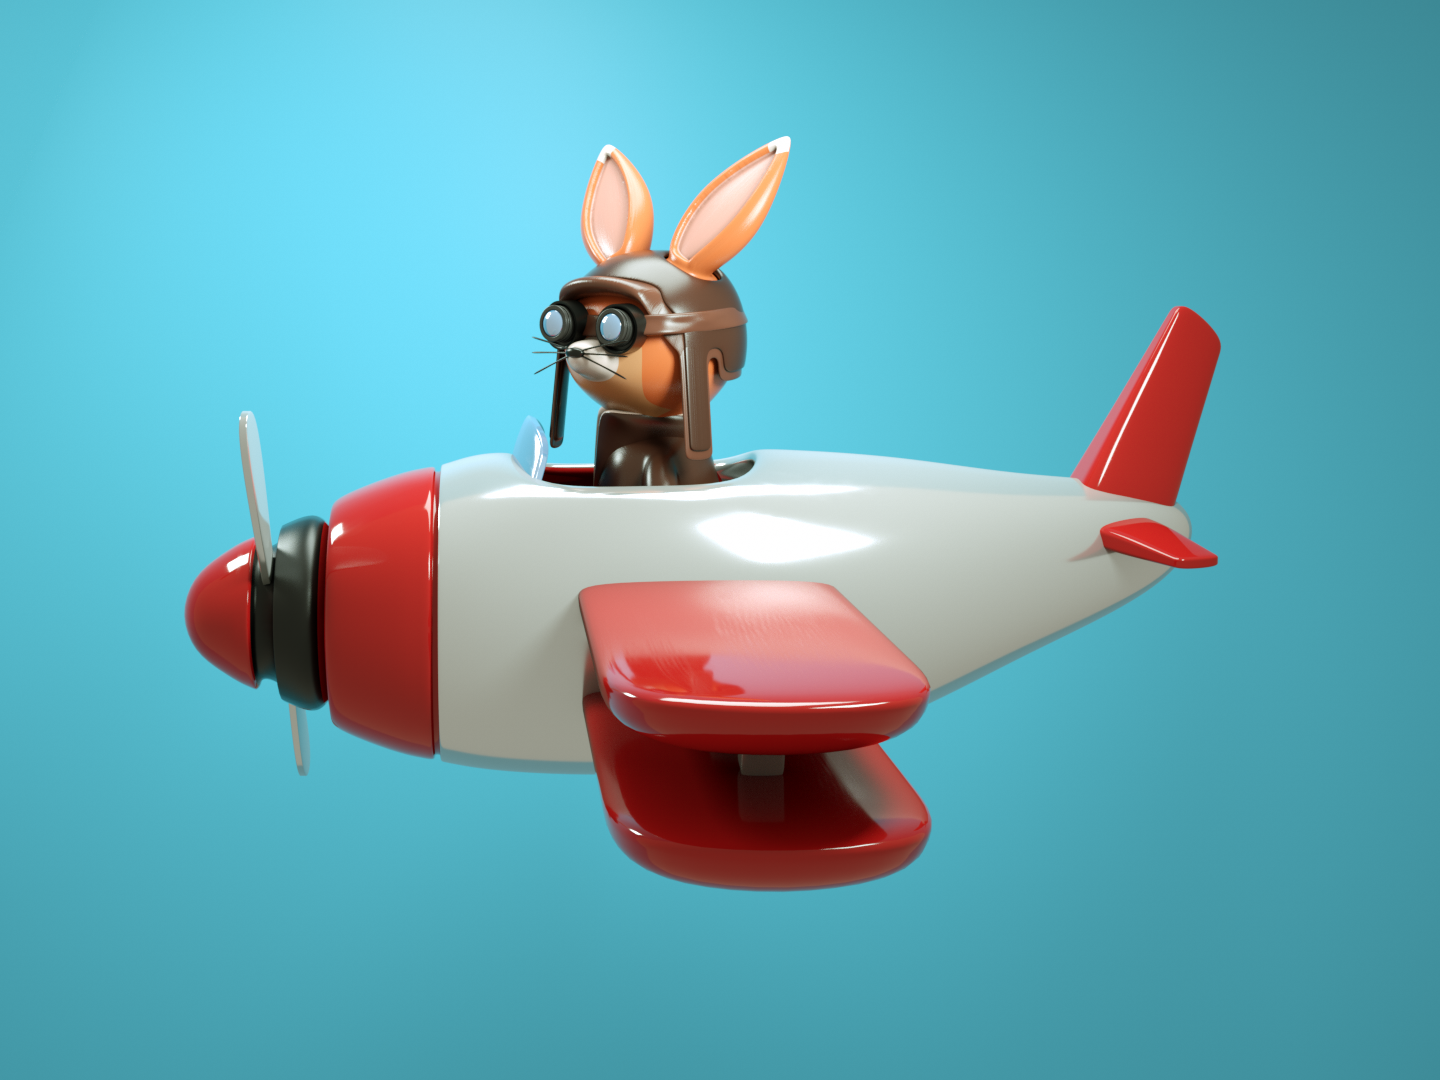 Piloto🦊 plane pilot fox toy design plastic octane maxonc4d material illustration design cinema 4d character animation octanerender 3d